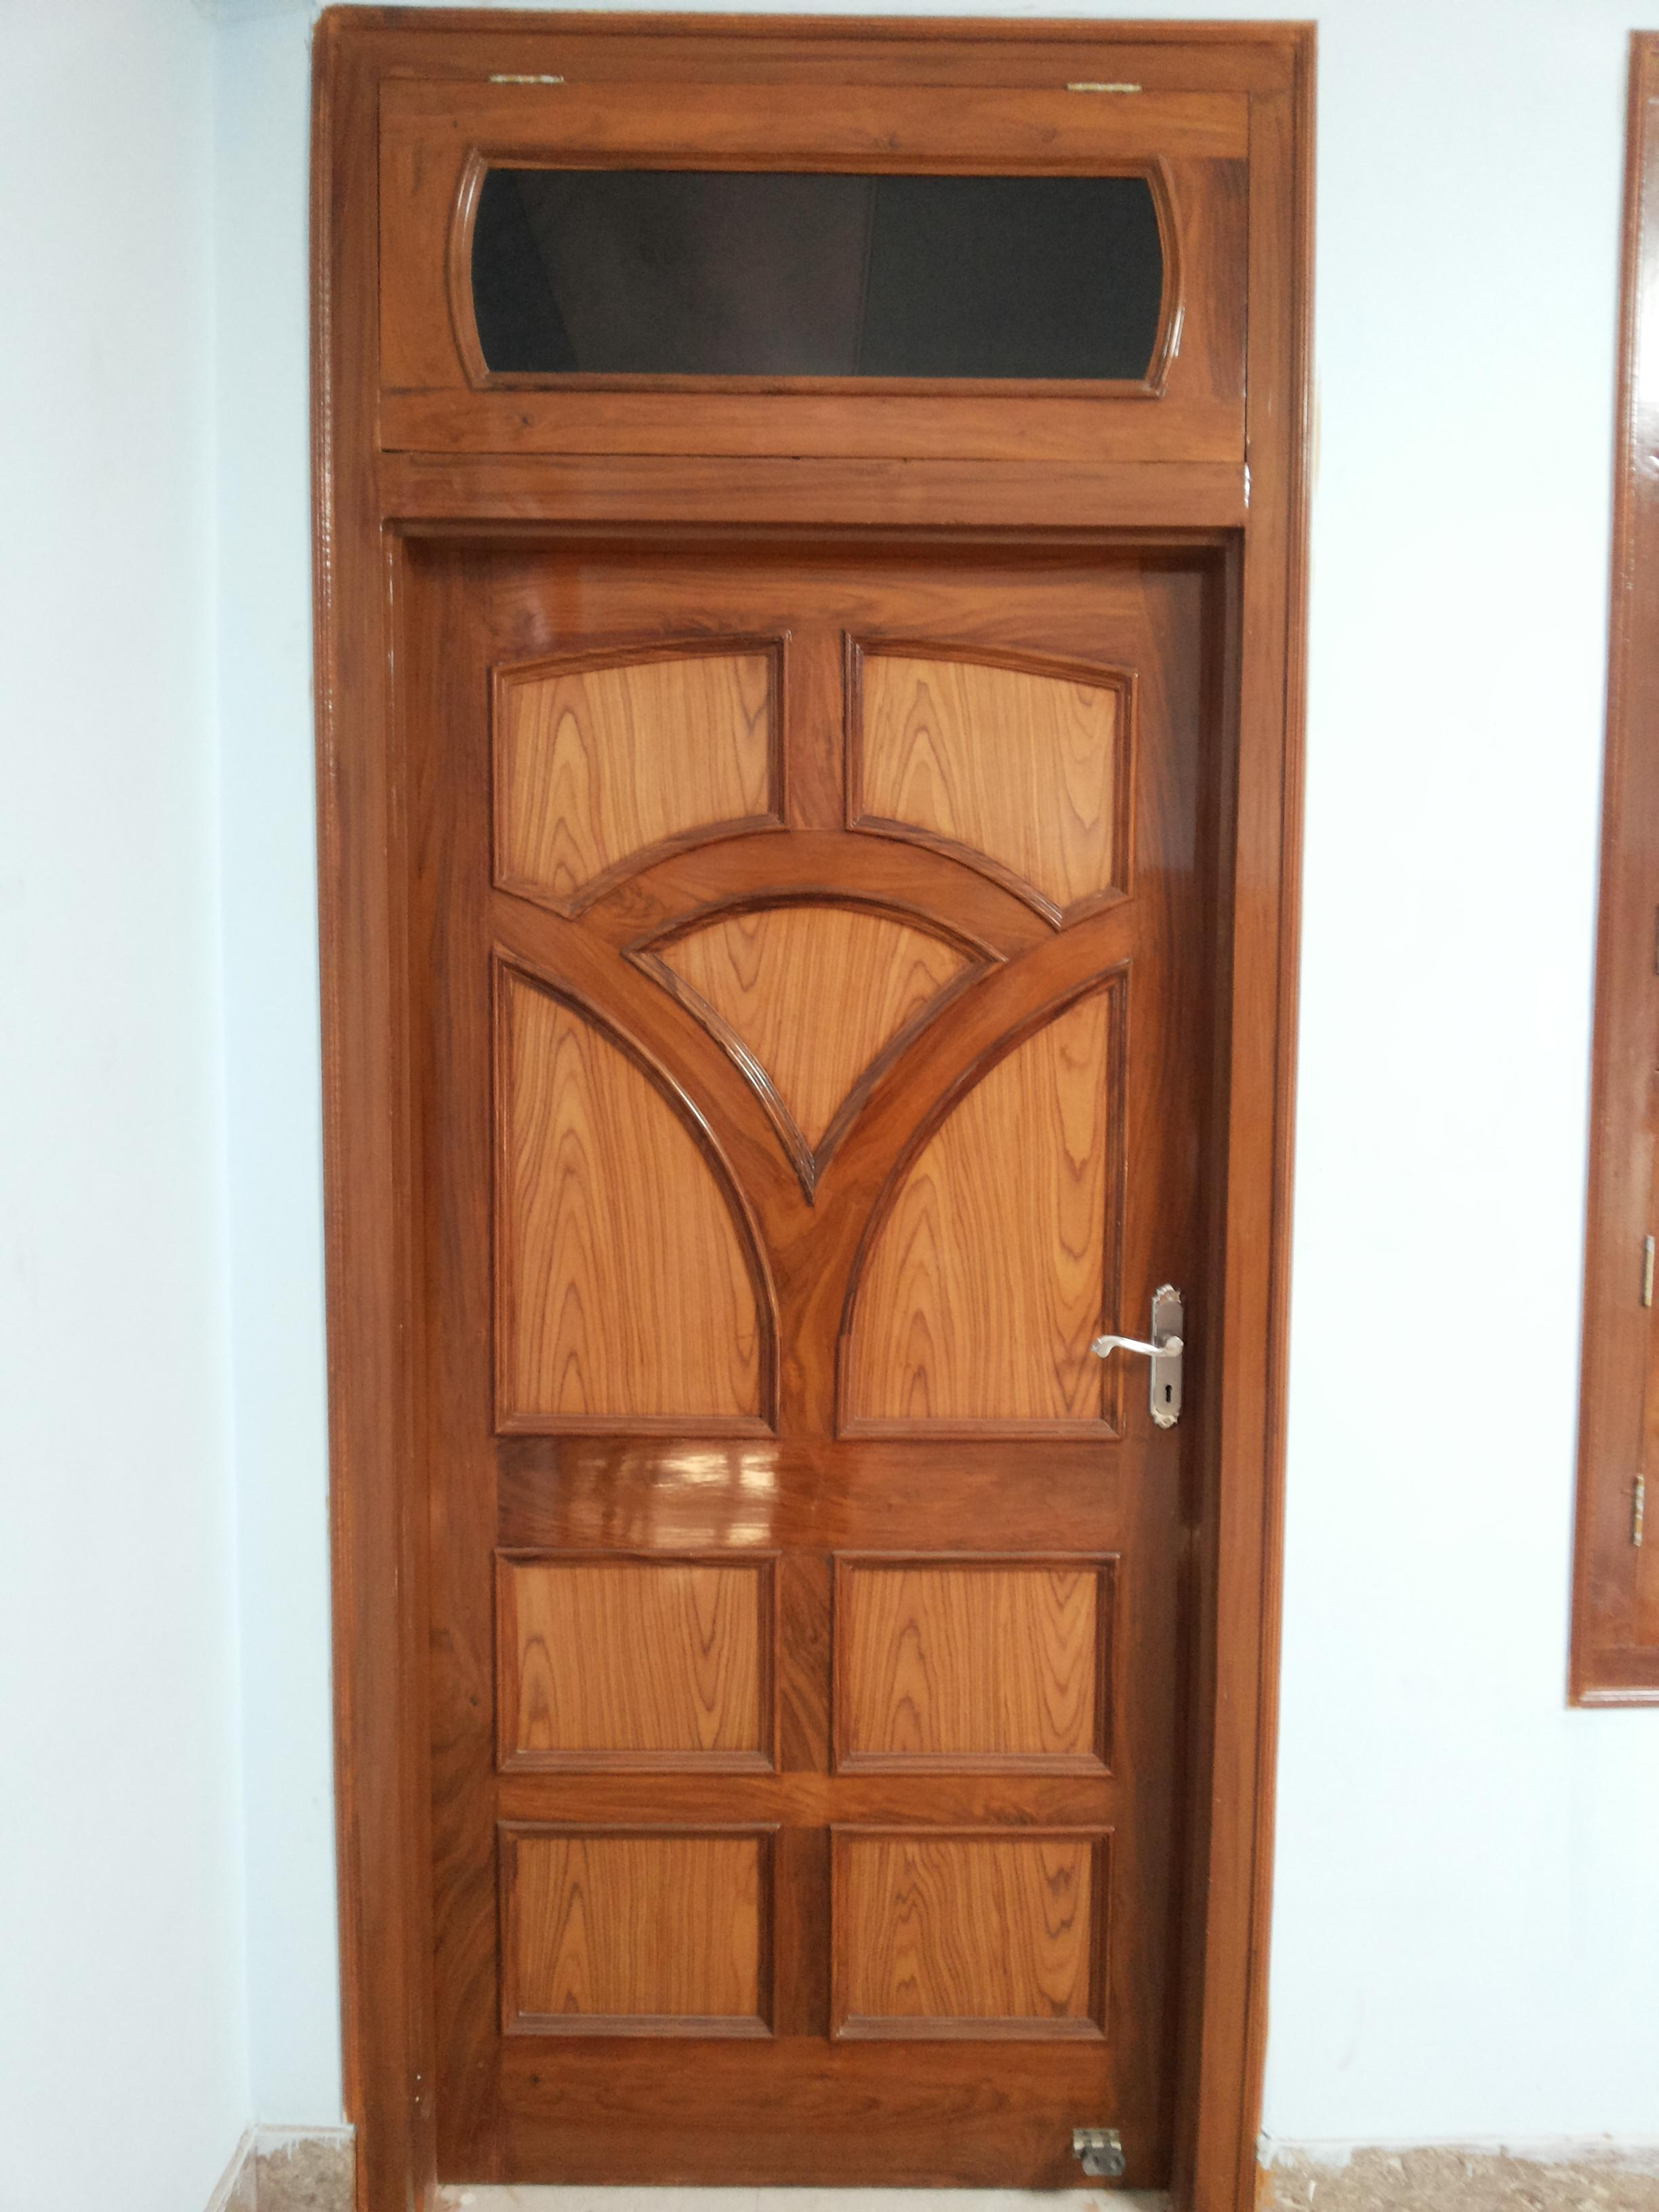 Single panel interior wood door design gharexpert for French main door designs